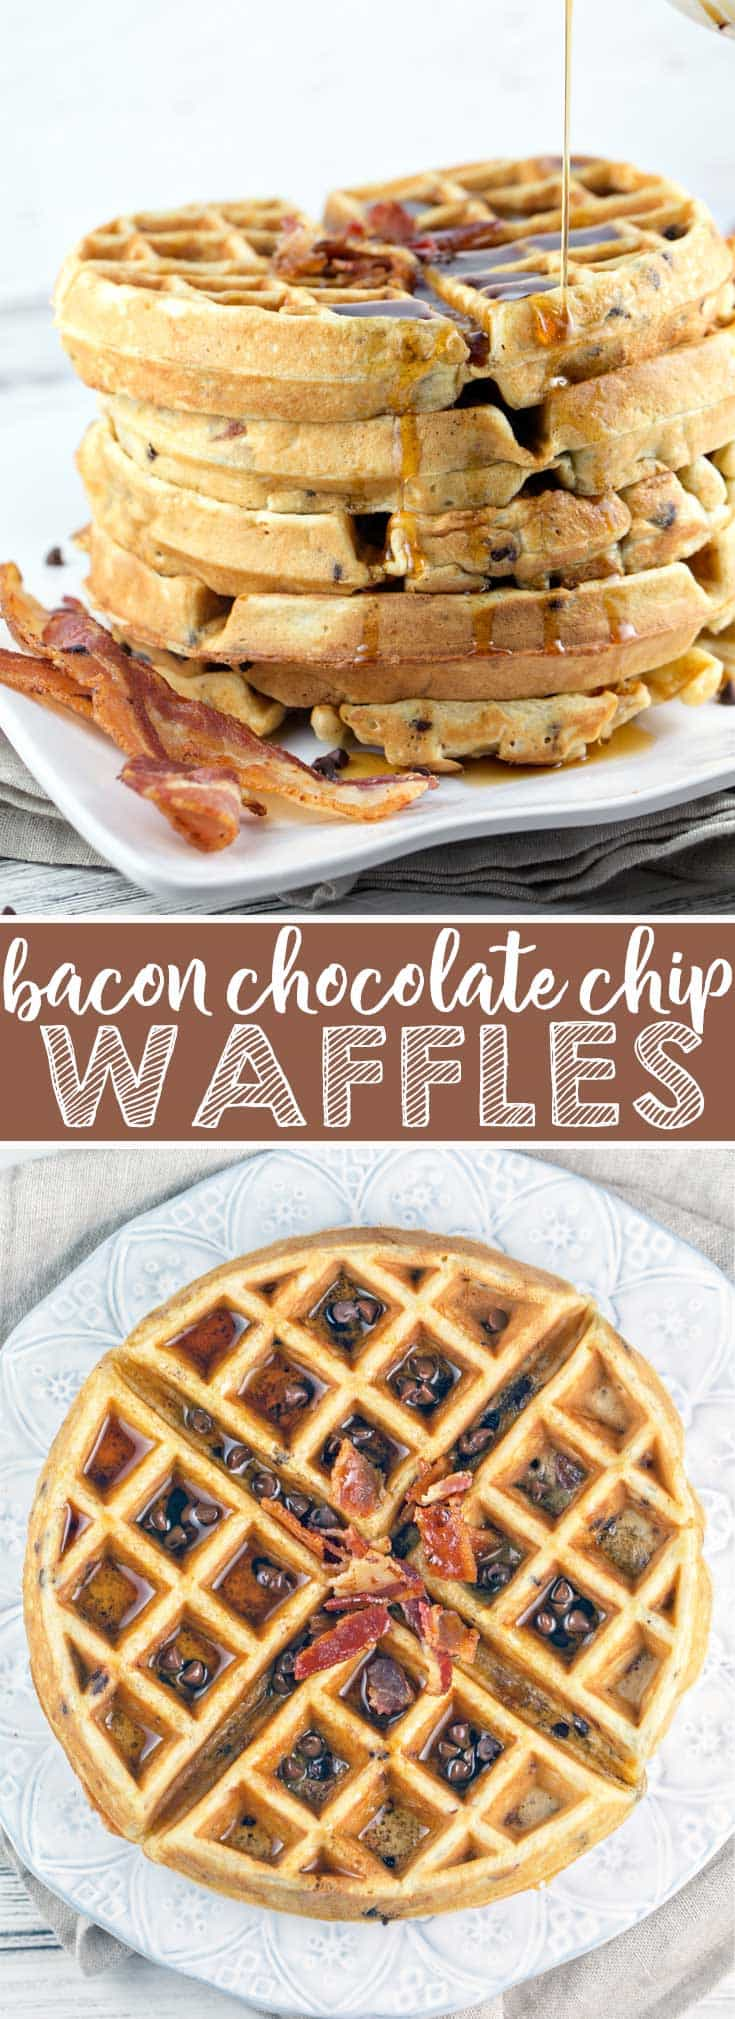 Bacon Chocolate Chip Waffles: Take your brunch to the next level with this crowd pleasing salty-sweet winning combination. {Bunsen Burner Bakery}